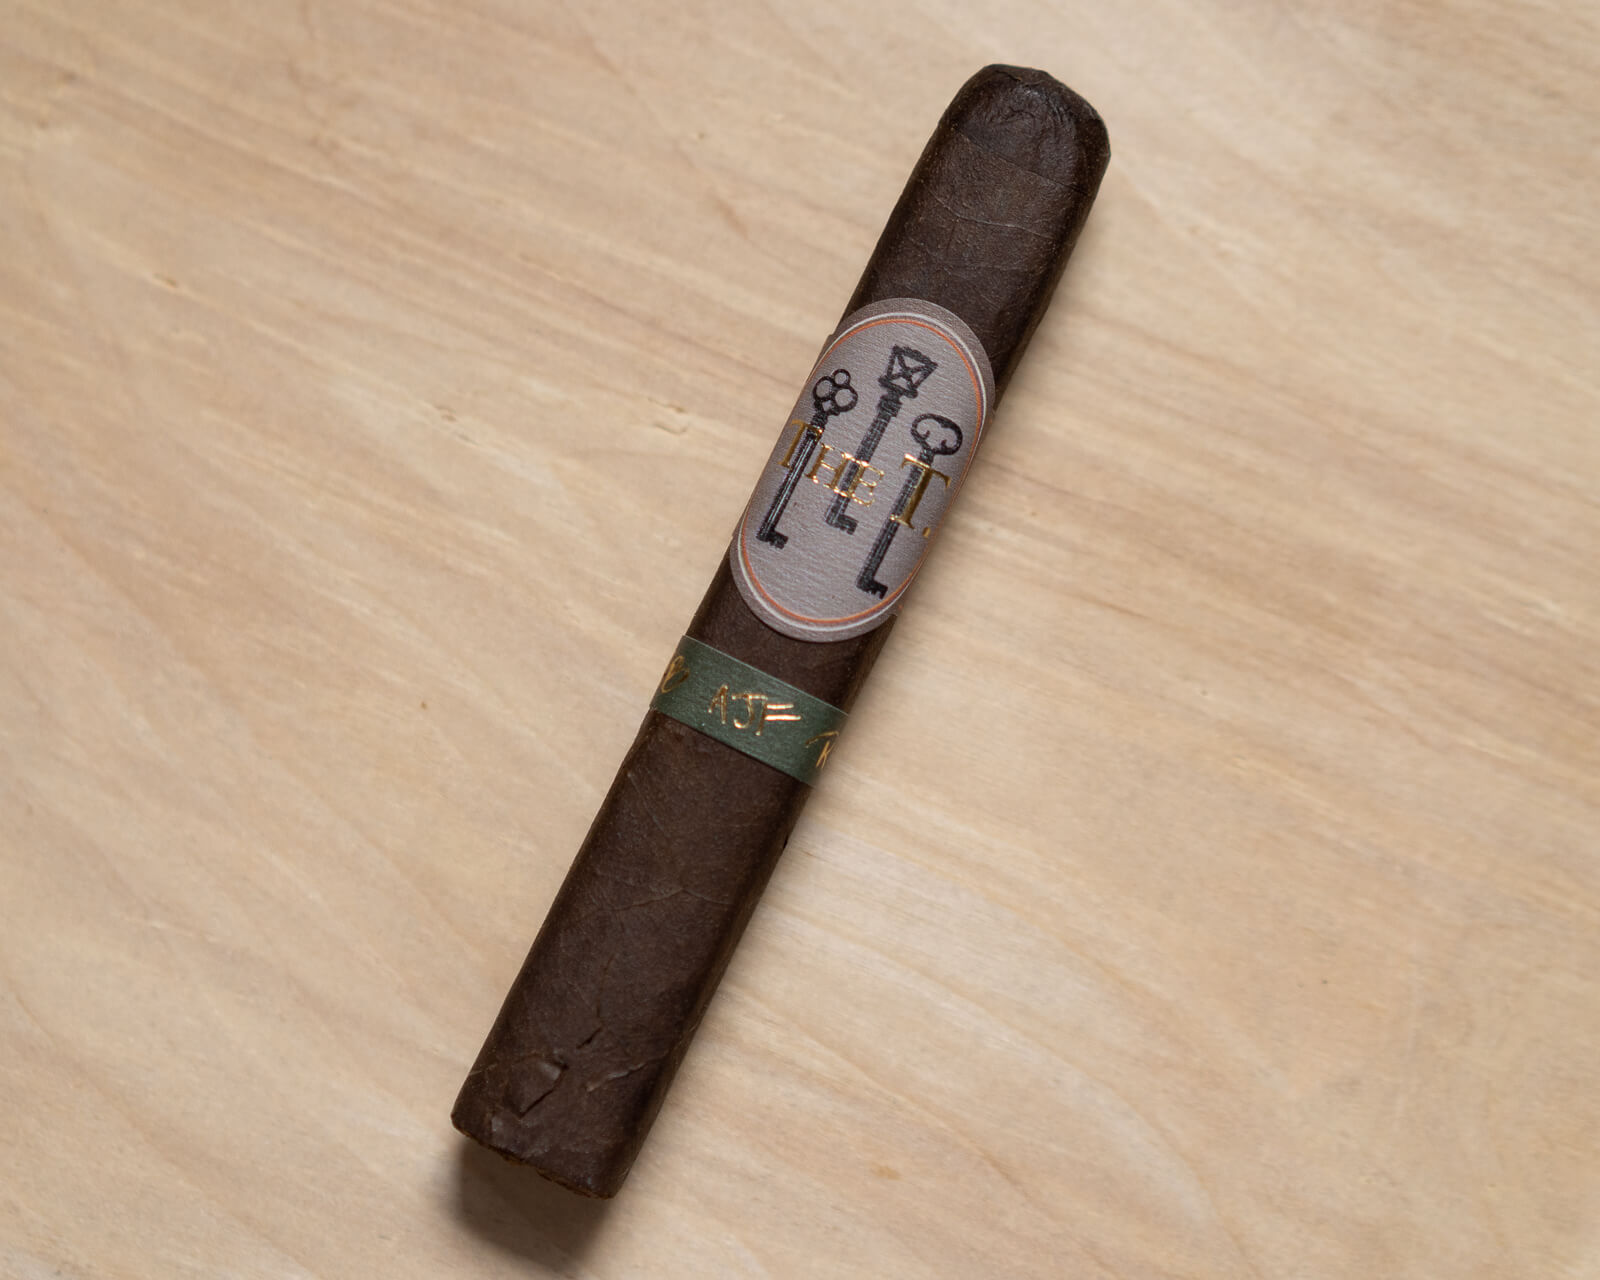 Caldwell The T Robusto Review 2